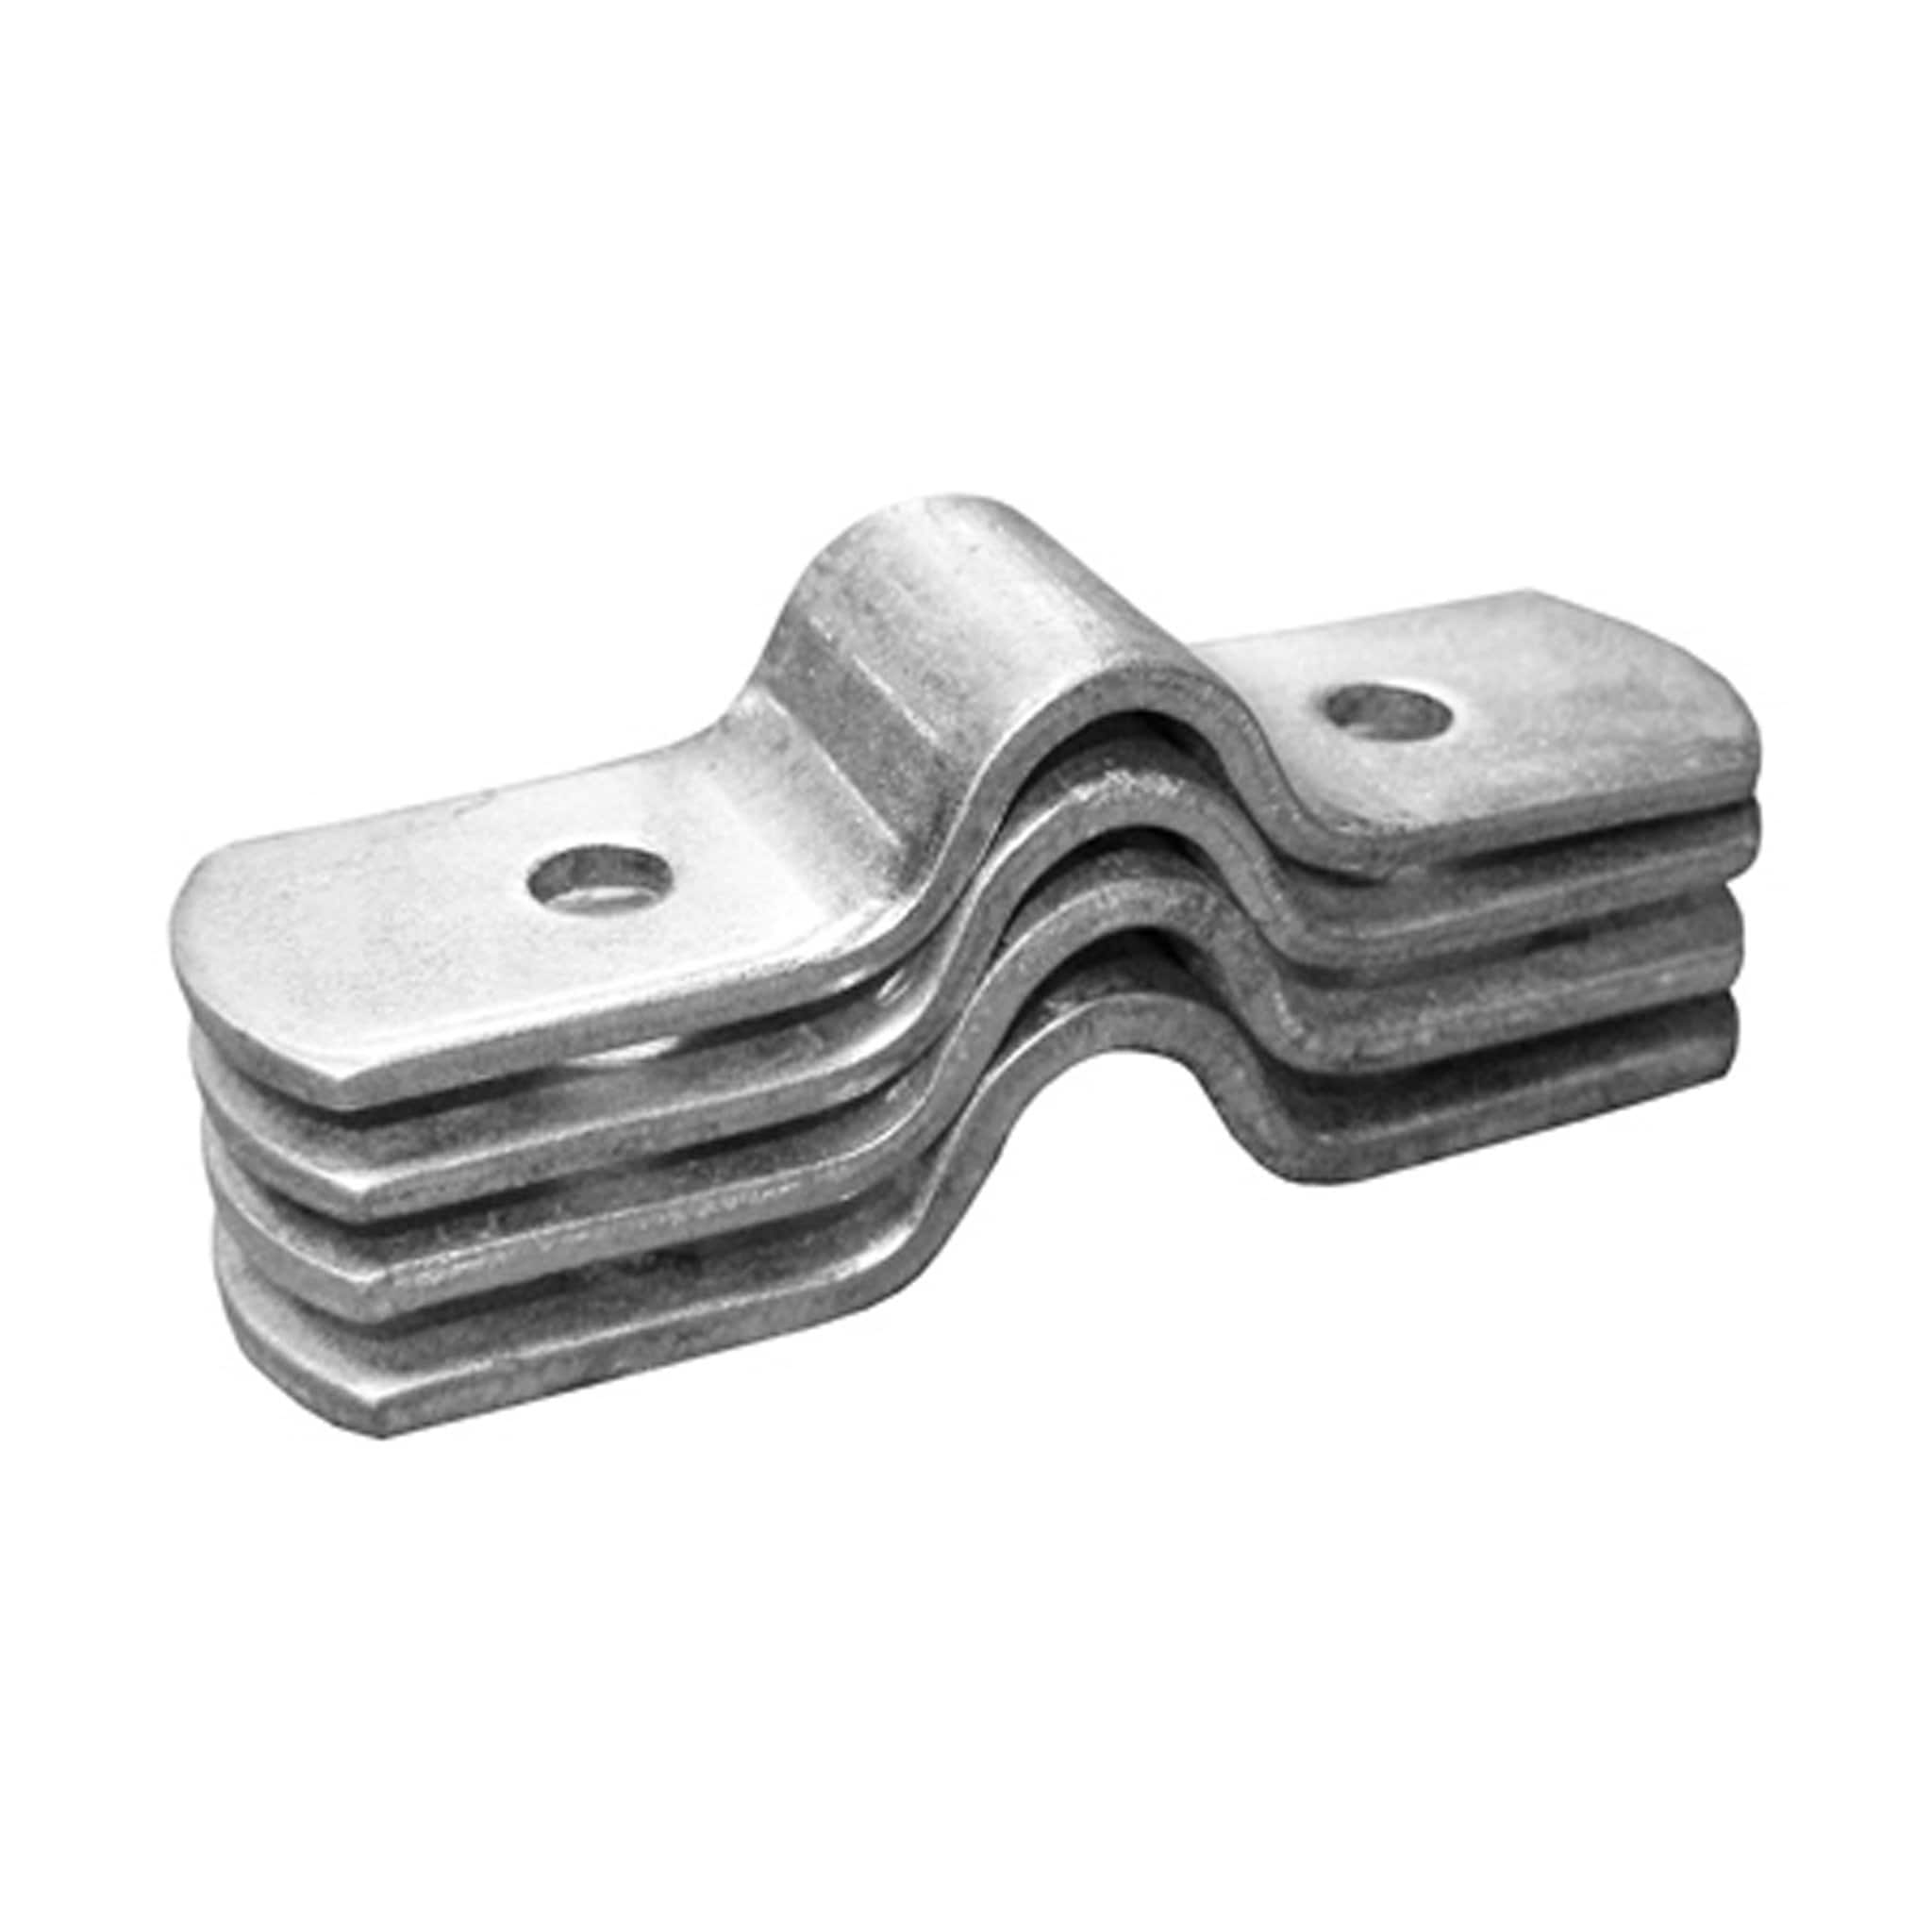 Stablekit Hay Rack Corner & Straight Wall Spare Bracket in Silver SKT887178